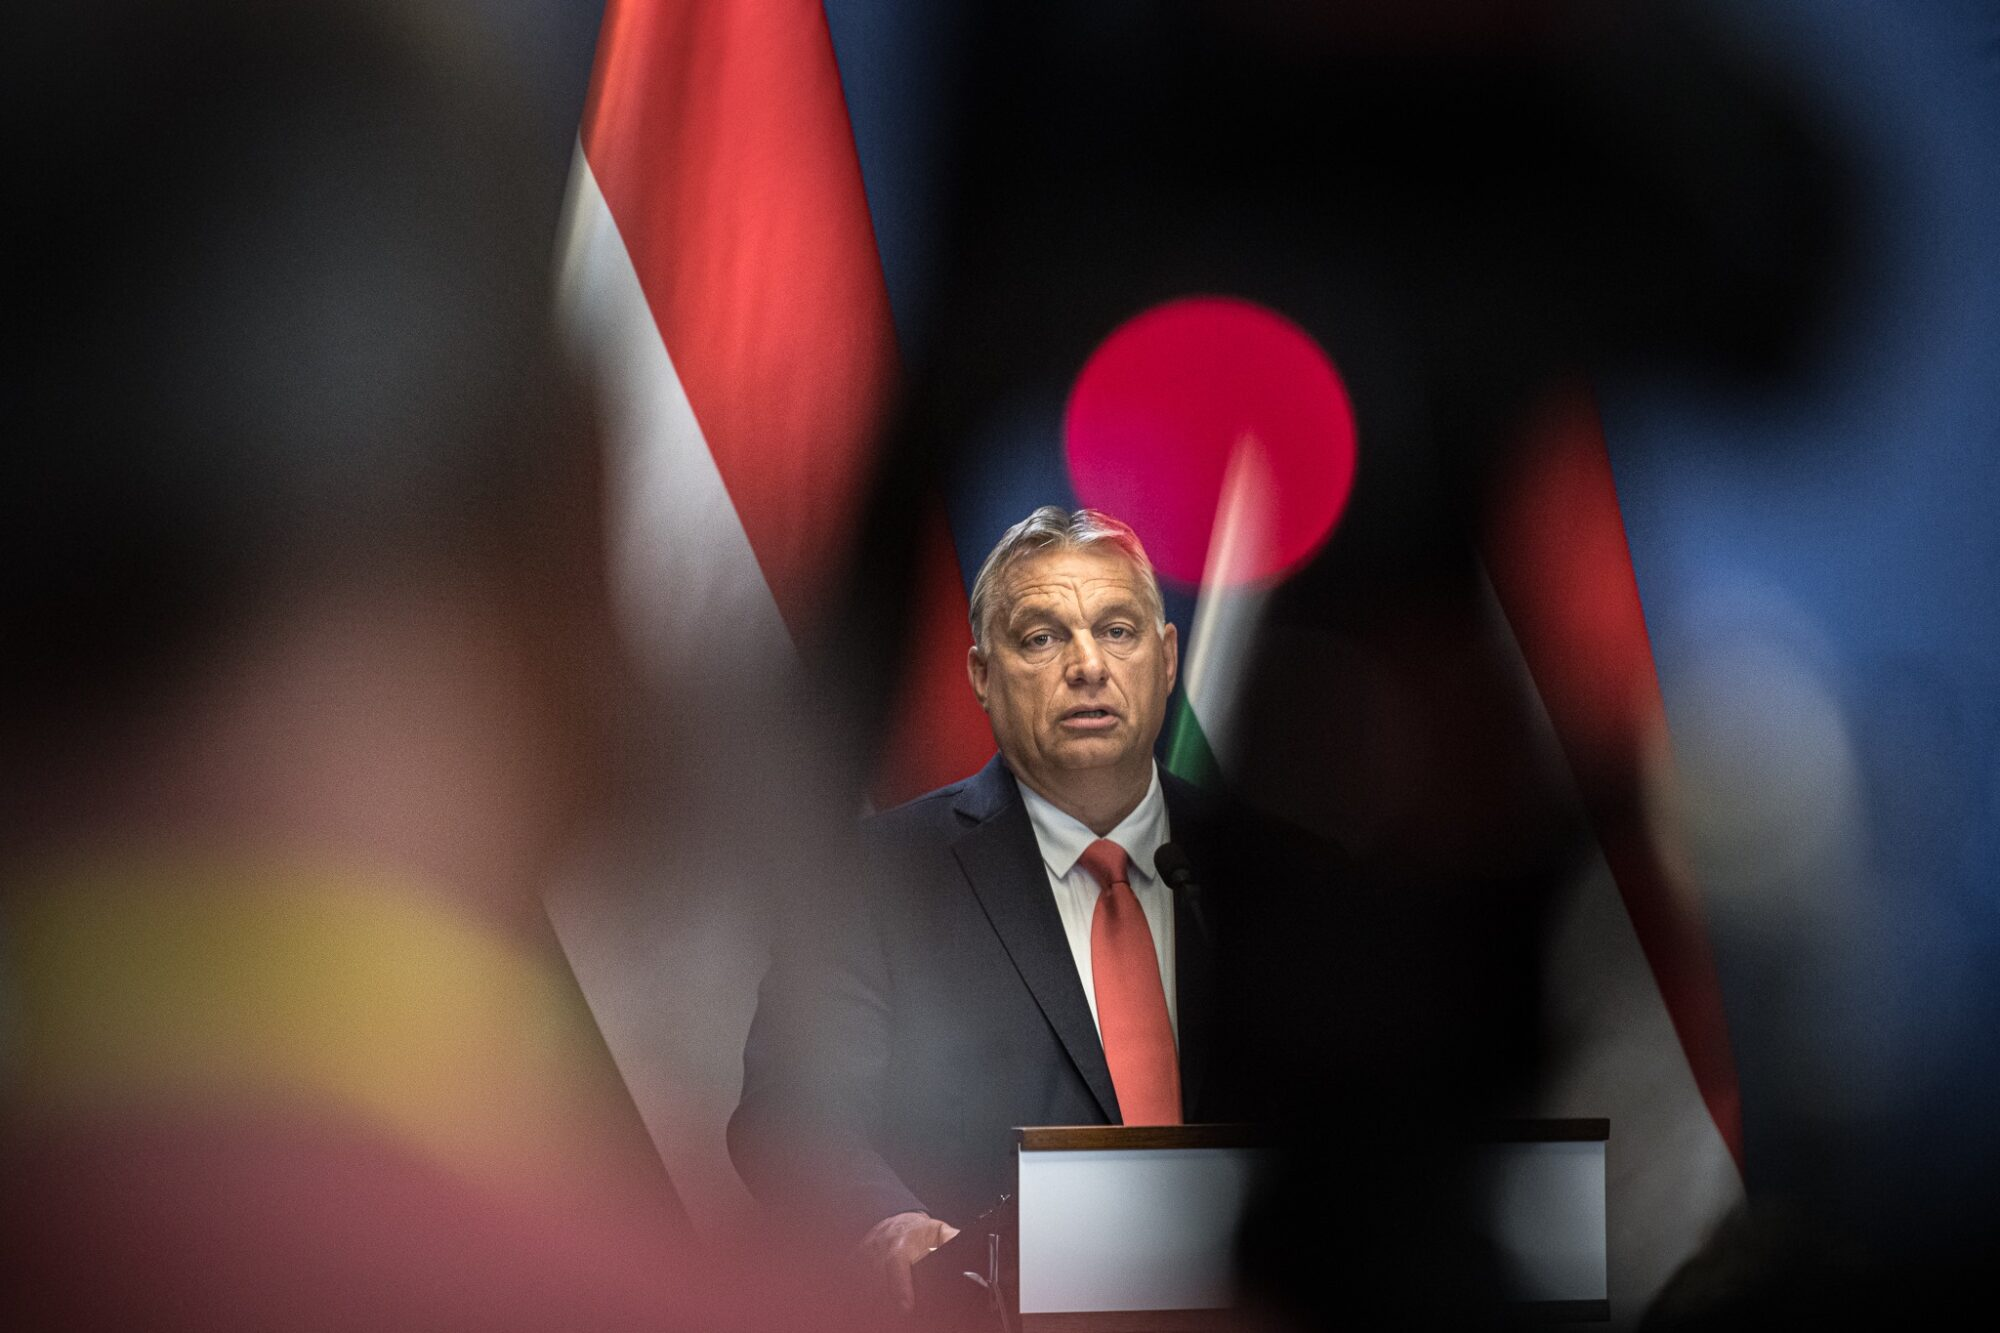 PANDEMIC RESPONSE A WINNER FOR VIKTOR ORBÁN